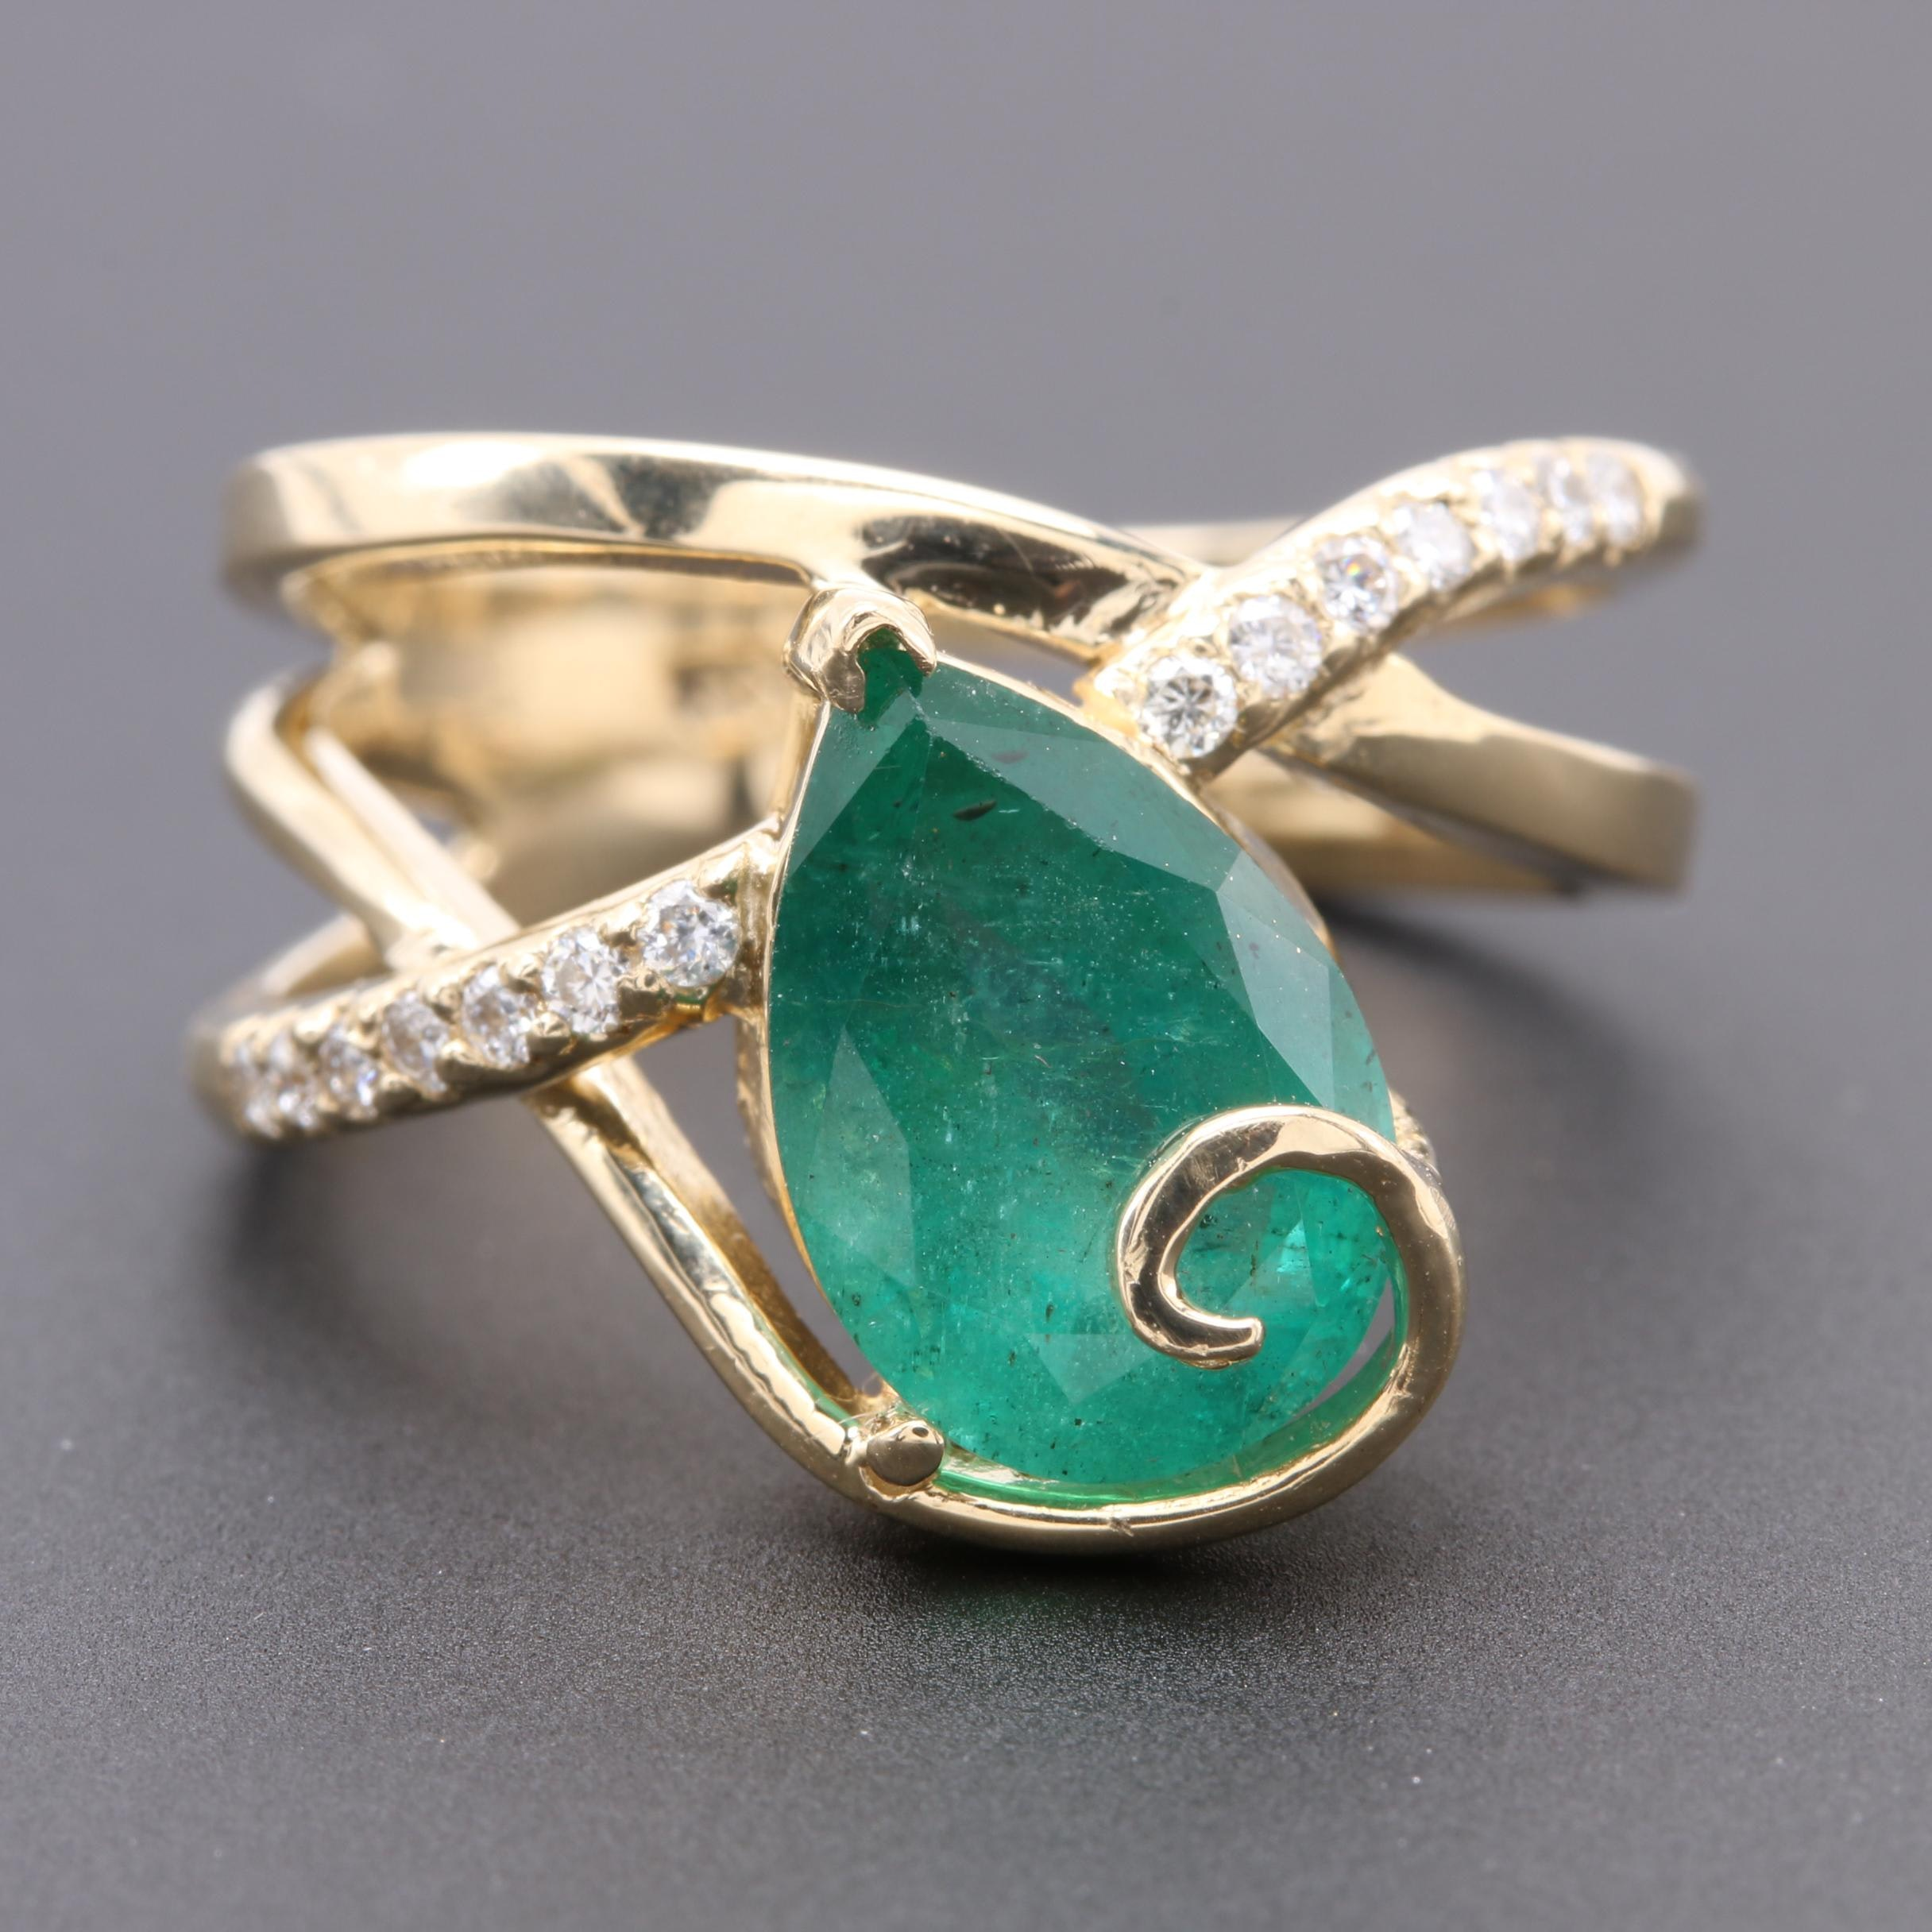 14K Yellow Gold 2.99 CT Emerald and Diamond Ring